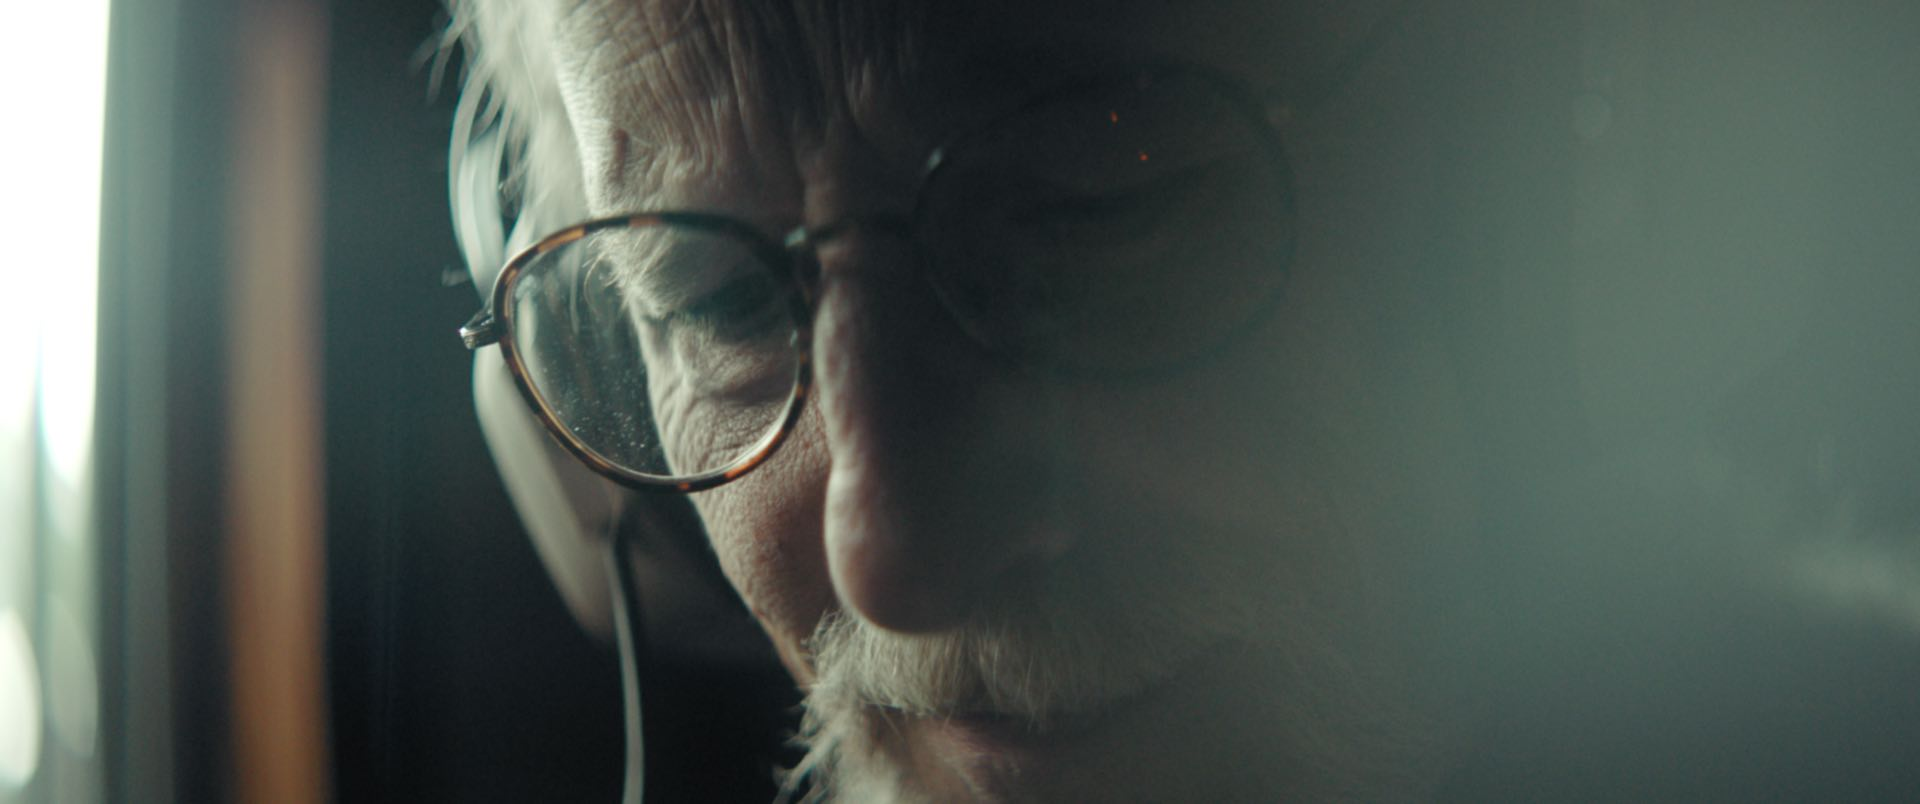 Still image from the short documentary Lost Time. Directed by Leo Pfeifer. Cinematographer and Colorist Morgana McKenzie